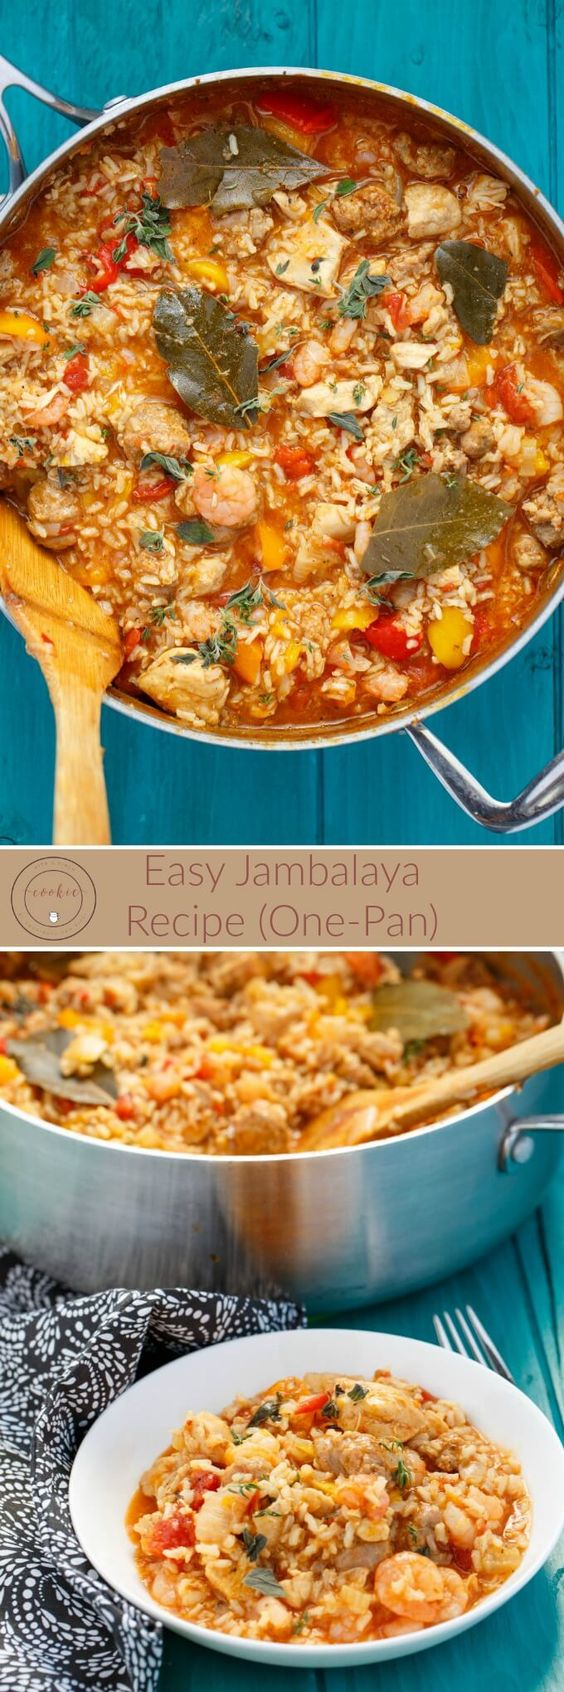 Easy Jambalaya Recipe | http://thecookiewriter.com | @thecookiewriter | #onepan | This one pot dinner is packed full of sausage, shrimp, and chicken! Great way to use up leftover rice!